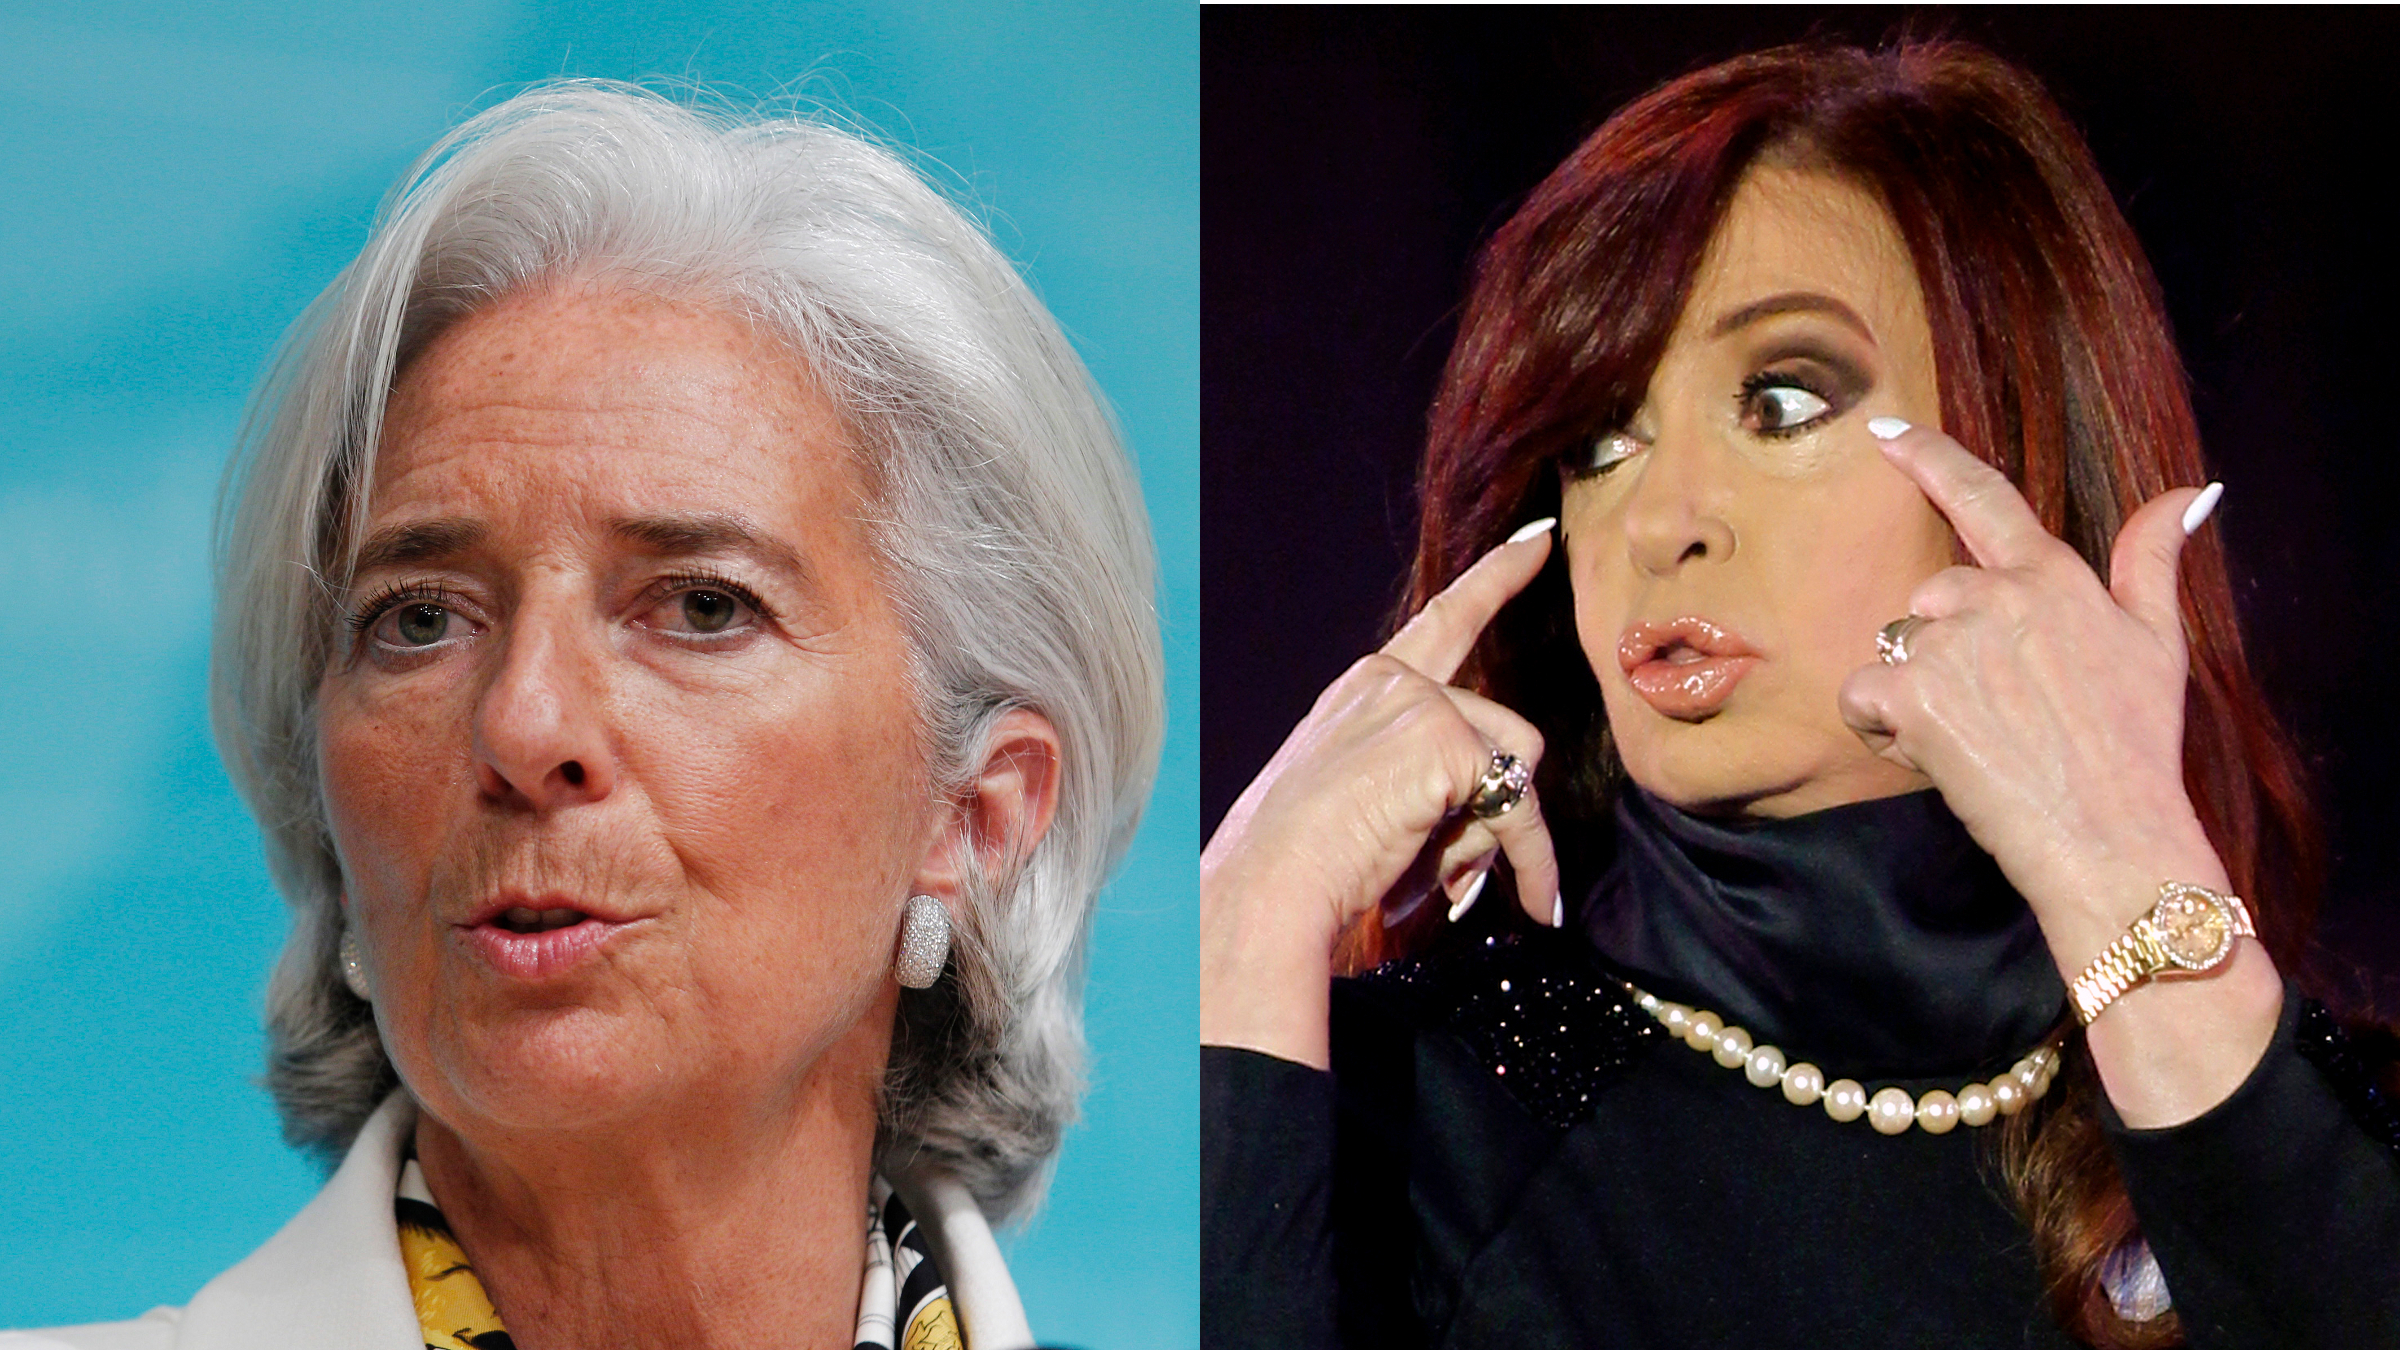 International Monetary Fund Managing Director Christine Lagarde speaks during a news conference at IMF headquarters in Washington June 14, 2013. /Argentina's President Cristina Fernandez de Kirchner gestures to supporters during a rally outside Casa Rosada Presidential Palace in Buenos Aires May 25, 2013.